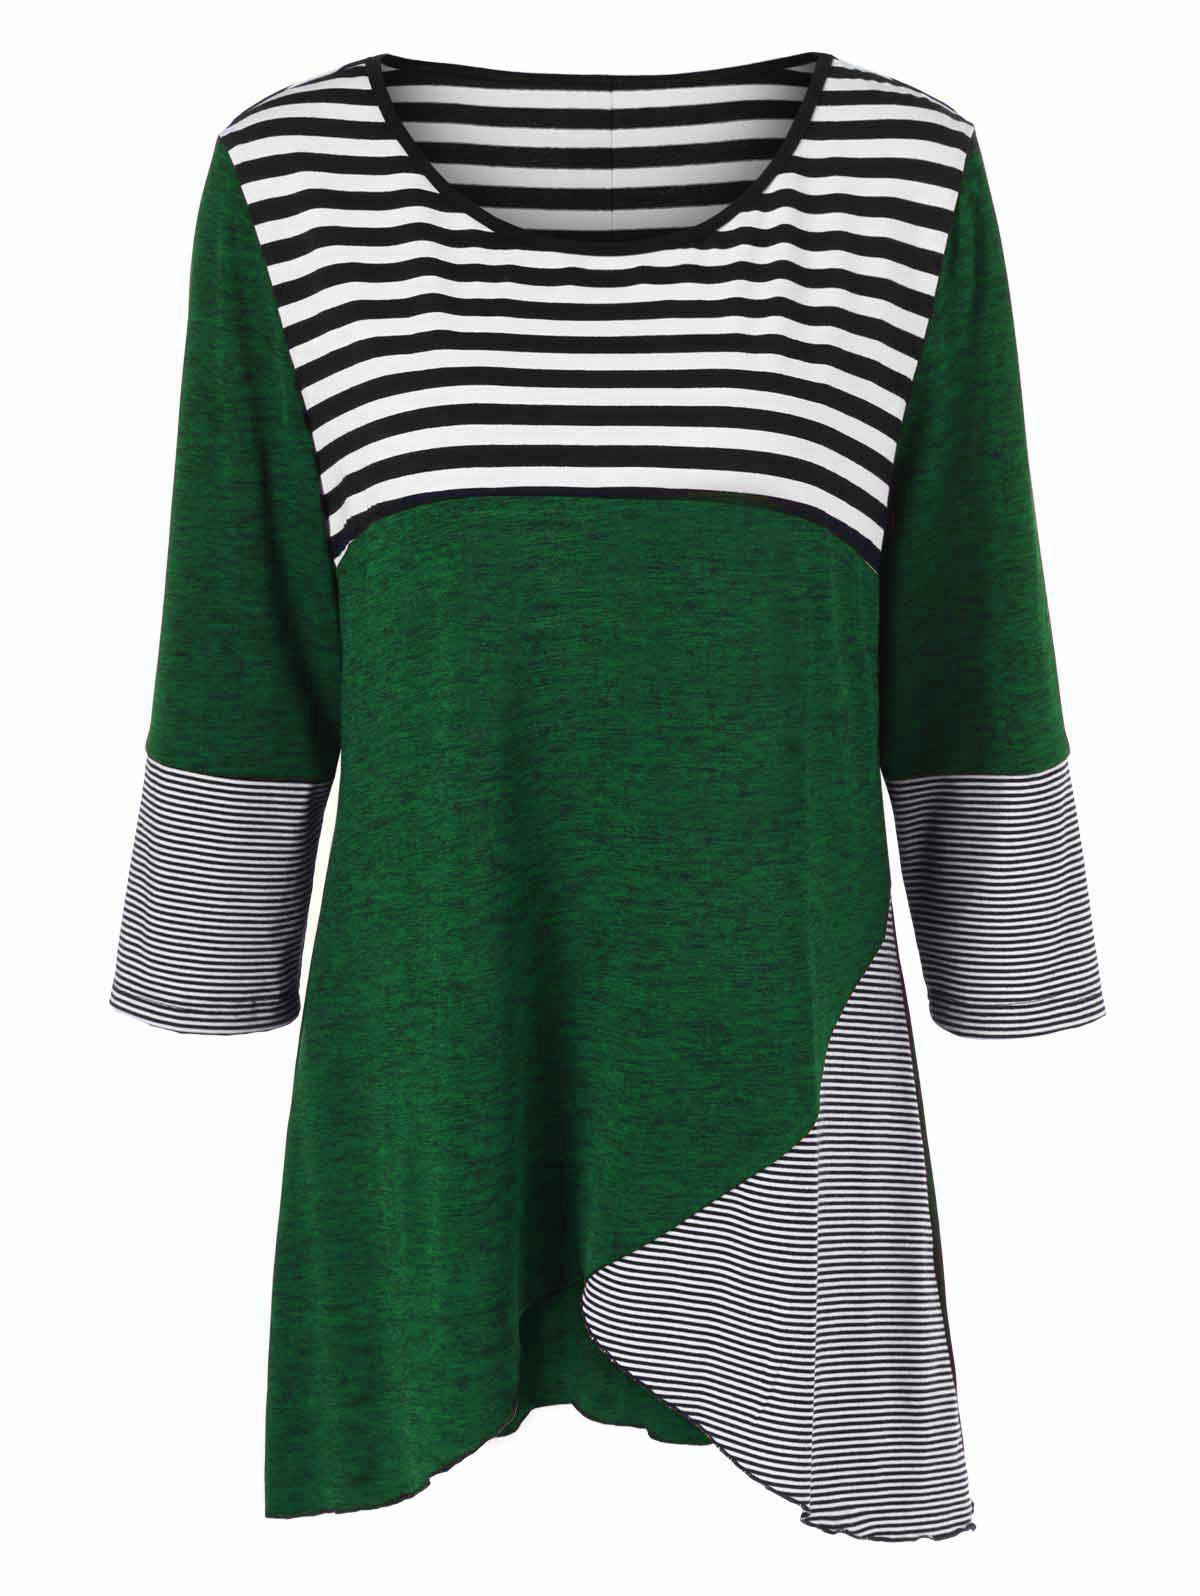 Plus Size Striped Tunic T-ShirtWOMEN<br><br>Size: 2XL; Color: GREEN; Material: Polyester,Spandex; Shirt Length: Long; Sleeve Length: Three Quarter; Collar: Scoop Neck; Style: Casual; Season: Fall,Spring; Pattern Type: Striped; Weight: 0.3800kg; Package Contents: 1 x T-Shirt;